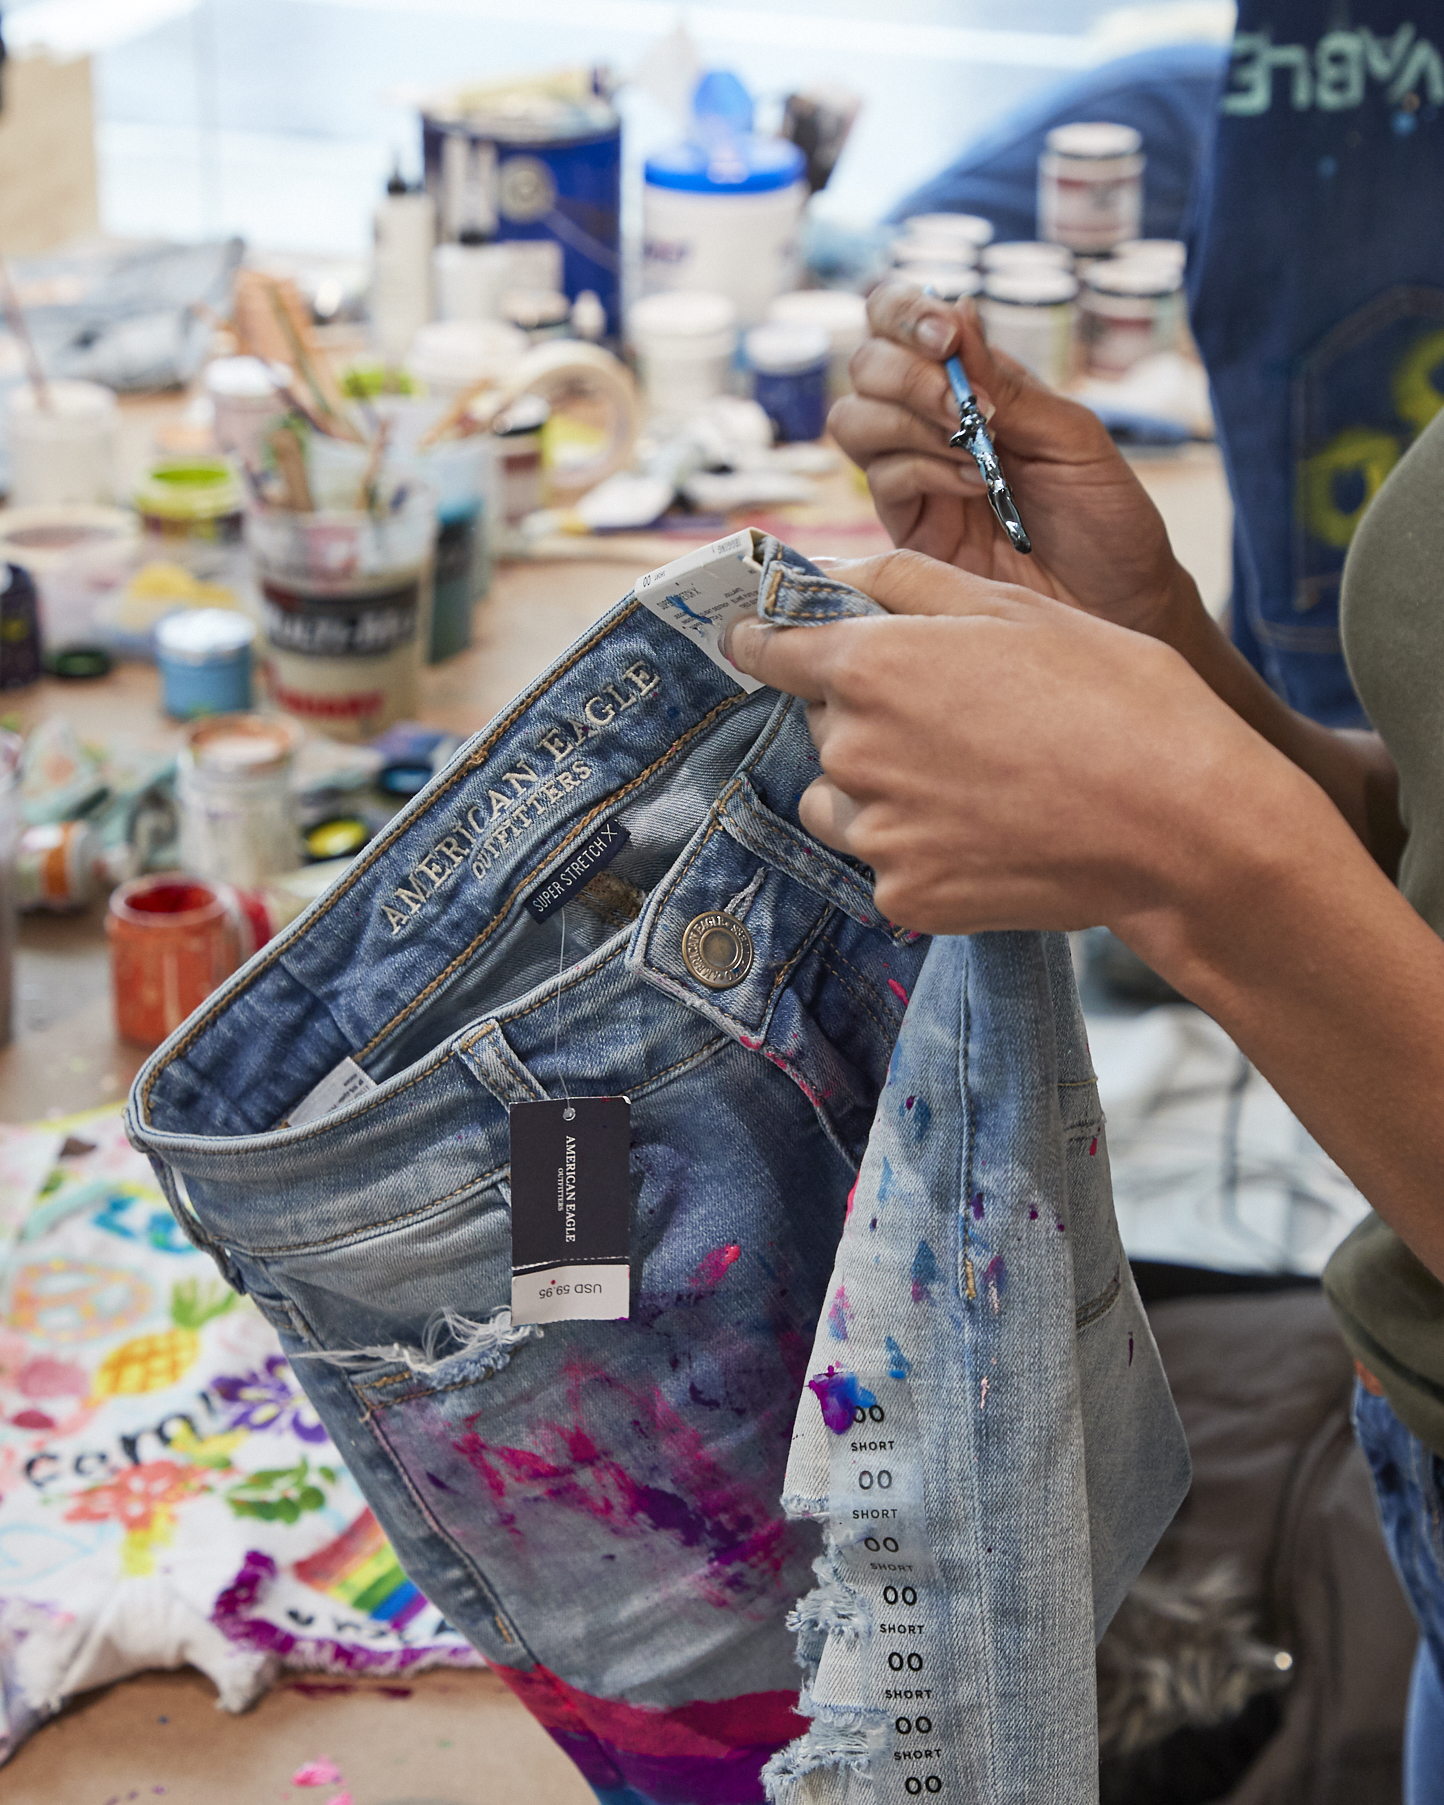 Painting/customizing American Eagle jeans